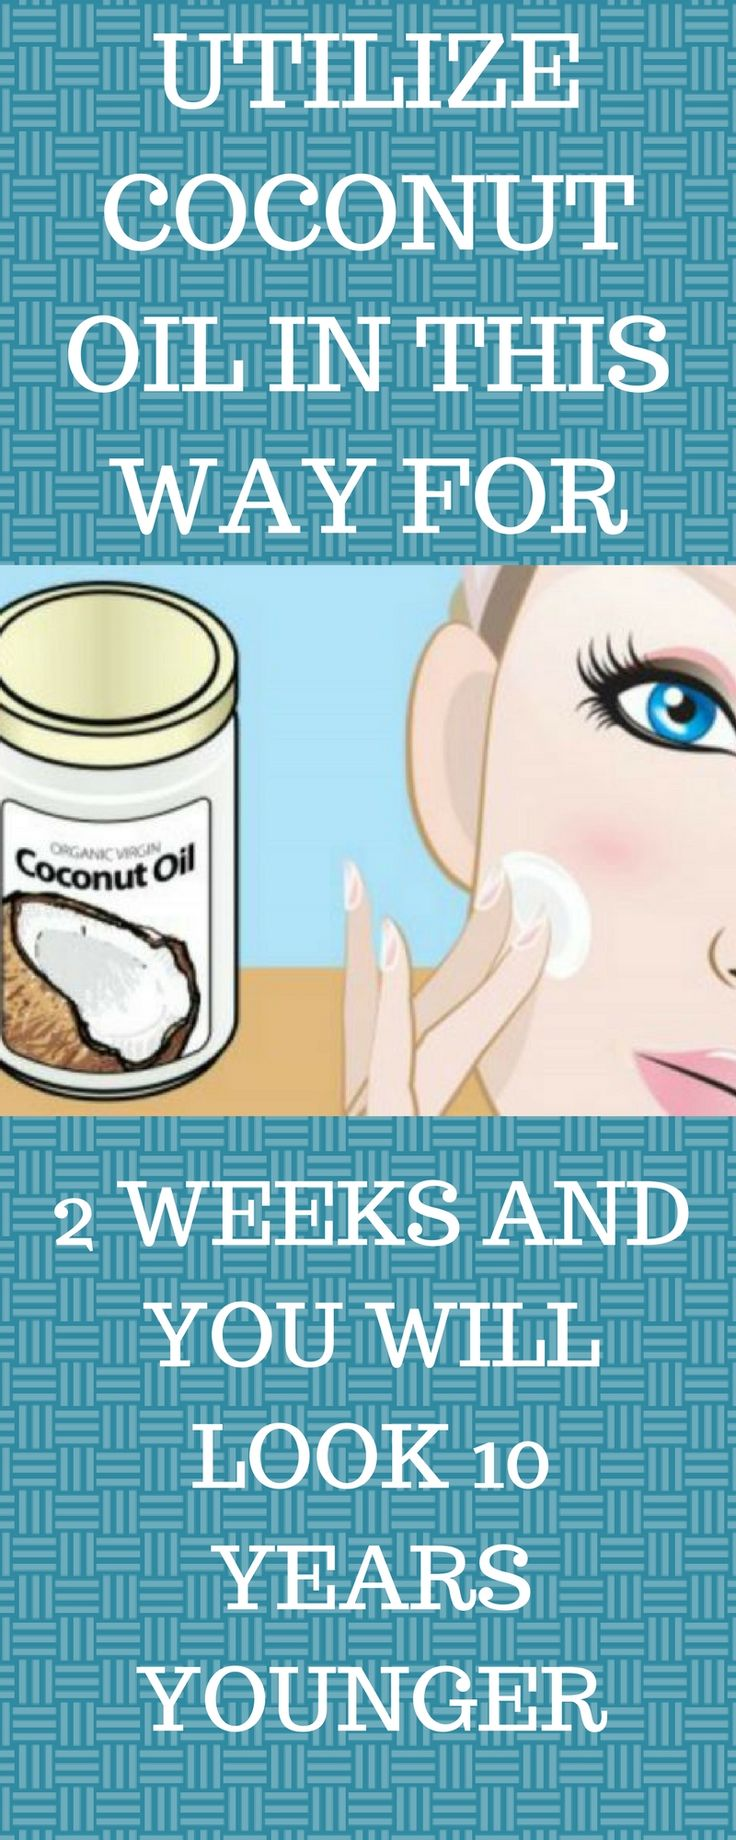 UTILIZE COCONUT OIL IN THIS WAY FOR 2 WEEKS AND YOU WILL LOOK 10 YEARS YOUNGER